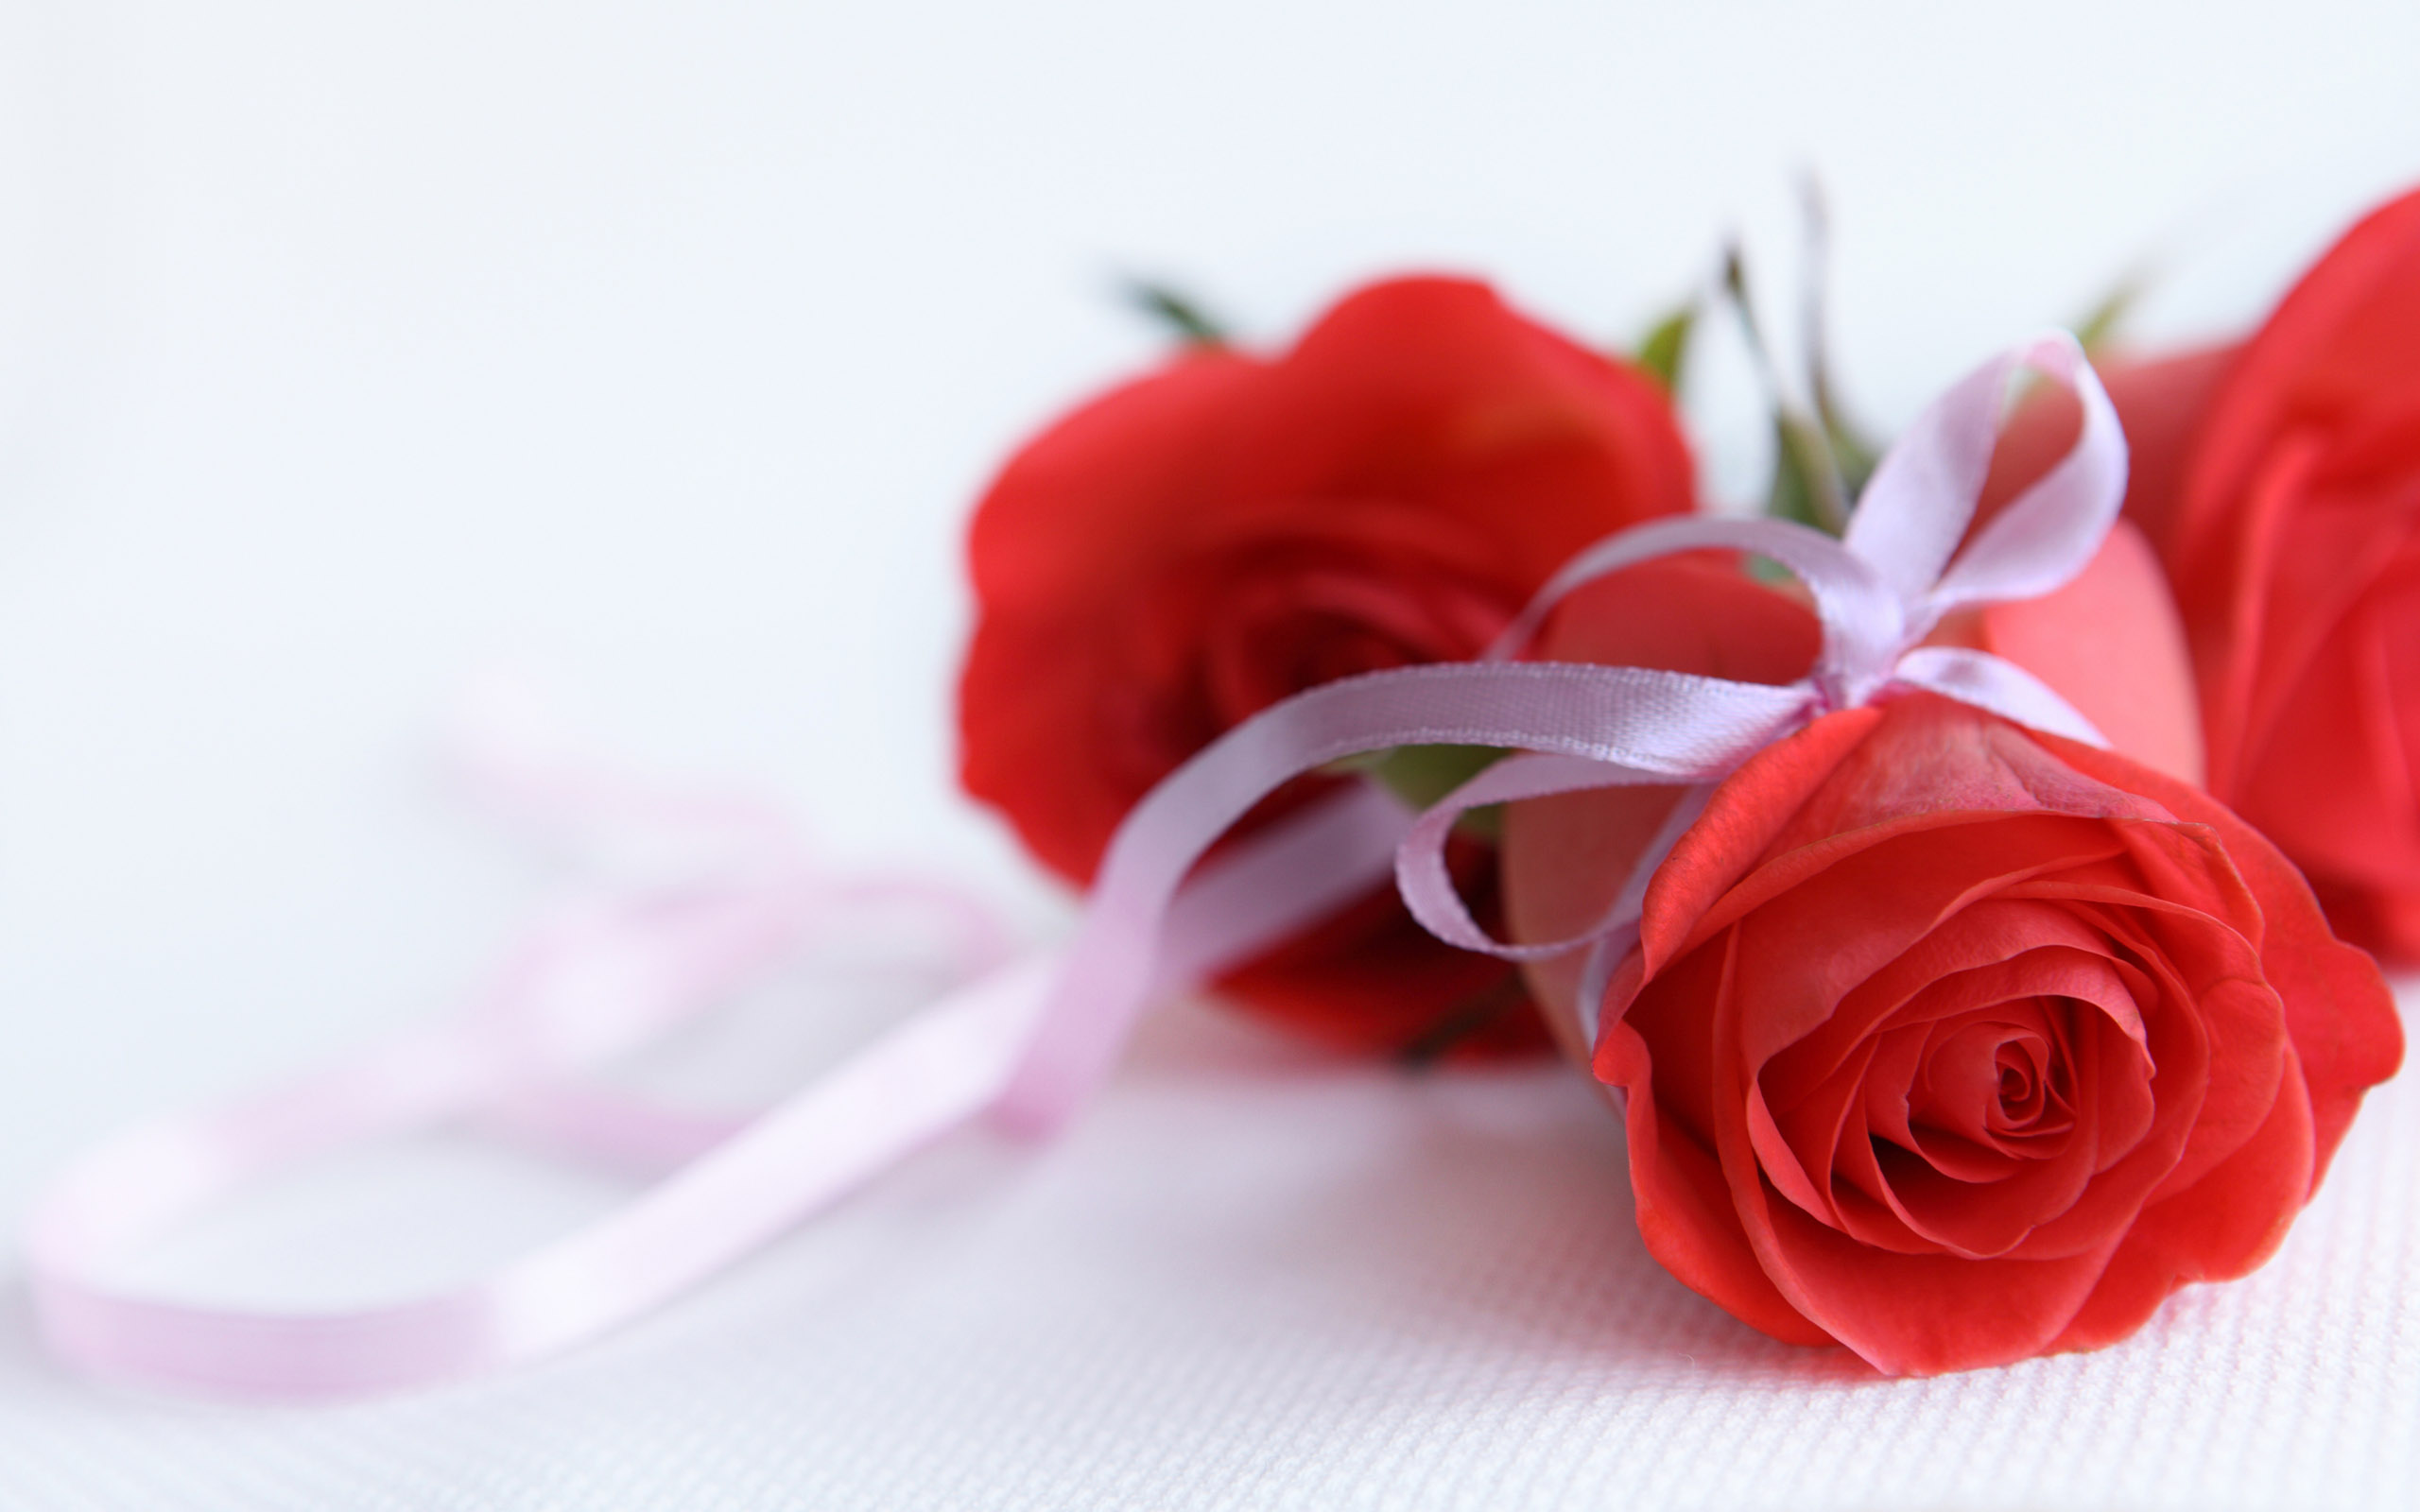 red rose beautiful images